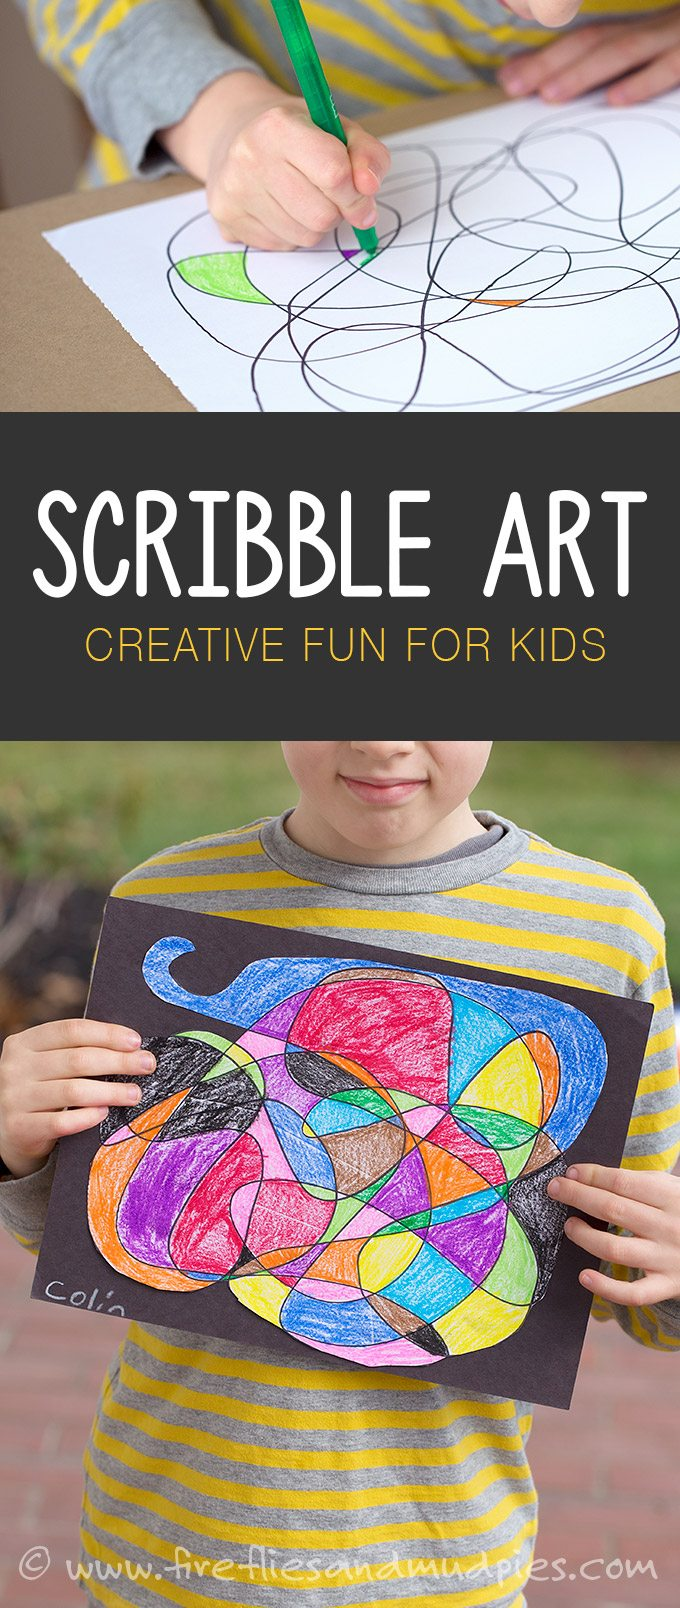 Scribble Drawing For Kids : Scribble art for kids